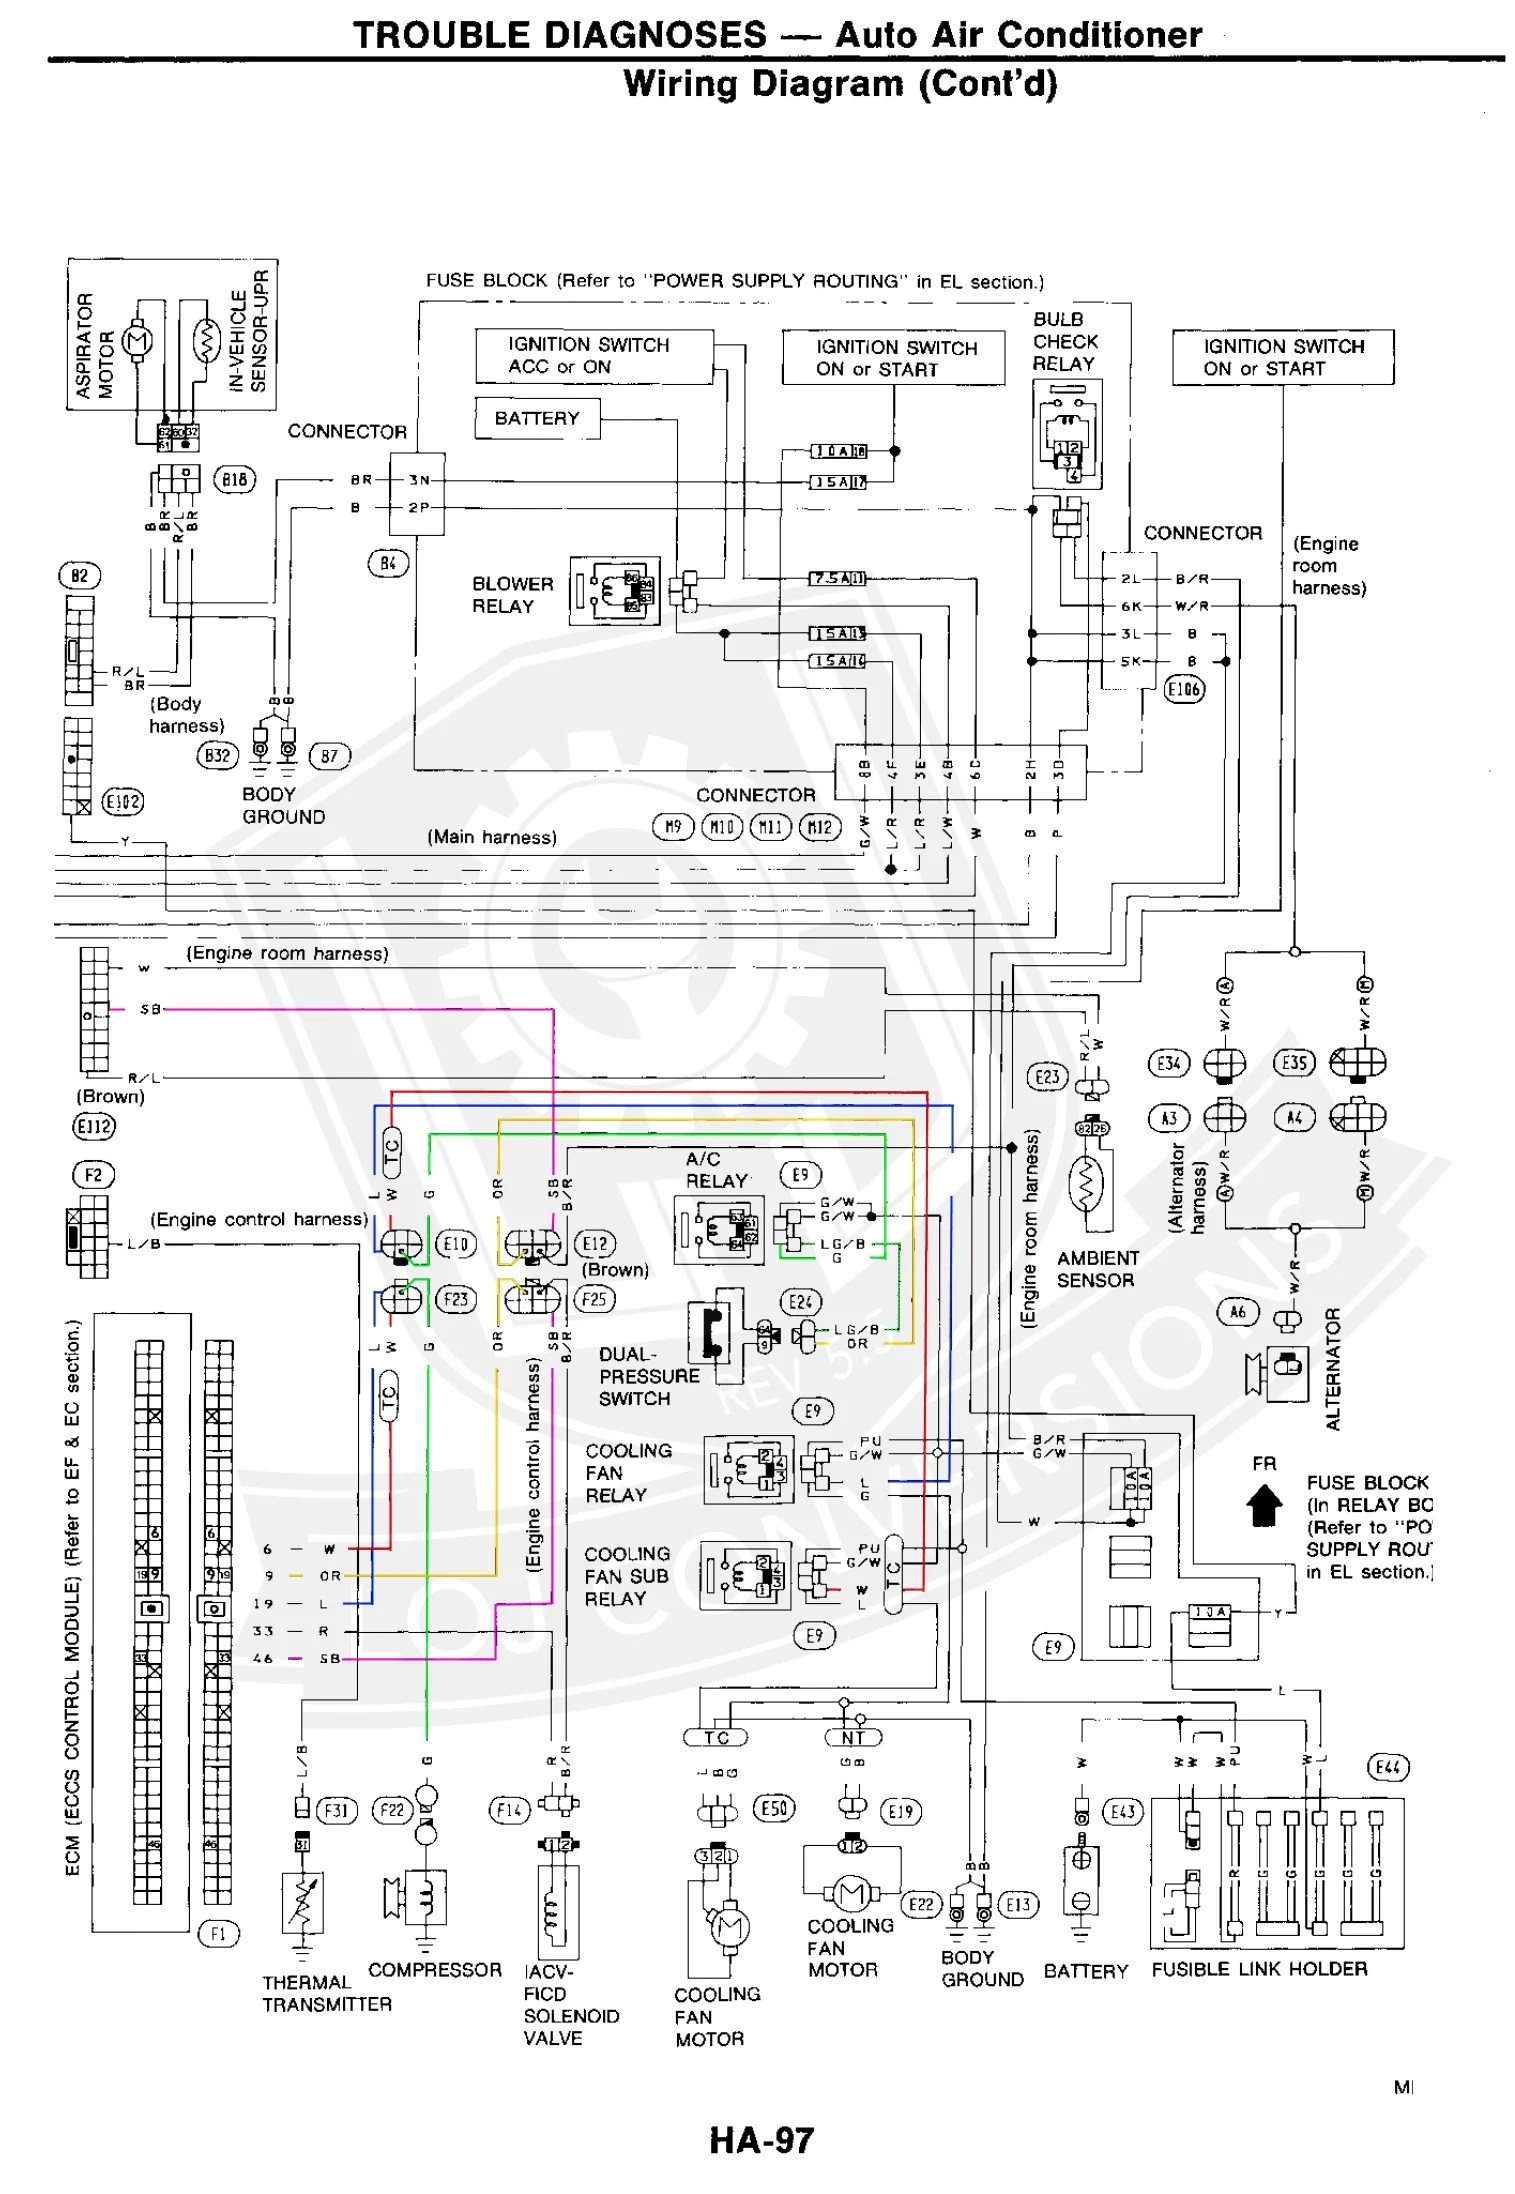 medium resolution of ls3 wiring diagram wiring diagram database ls3 engine harness wiring diagram